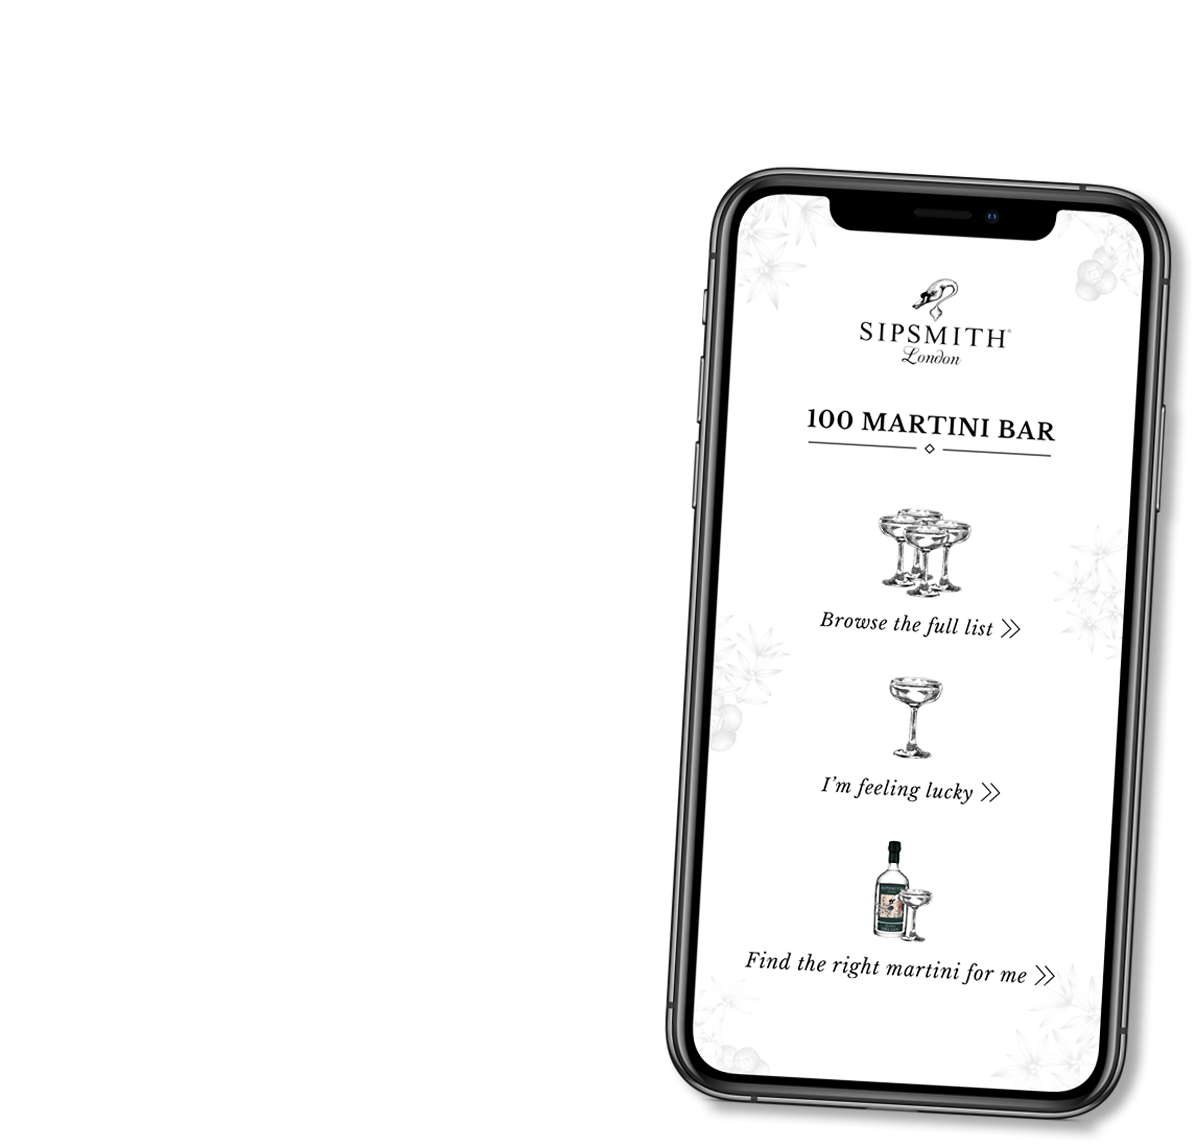 Sipsmith quiz page design on mobile